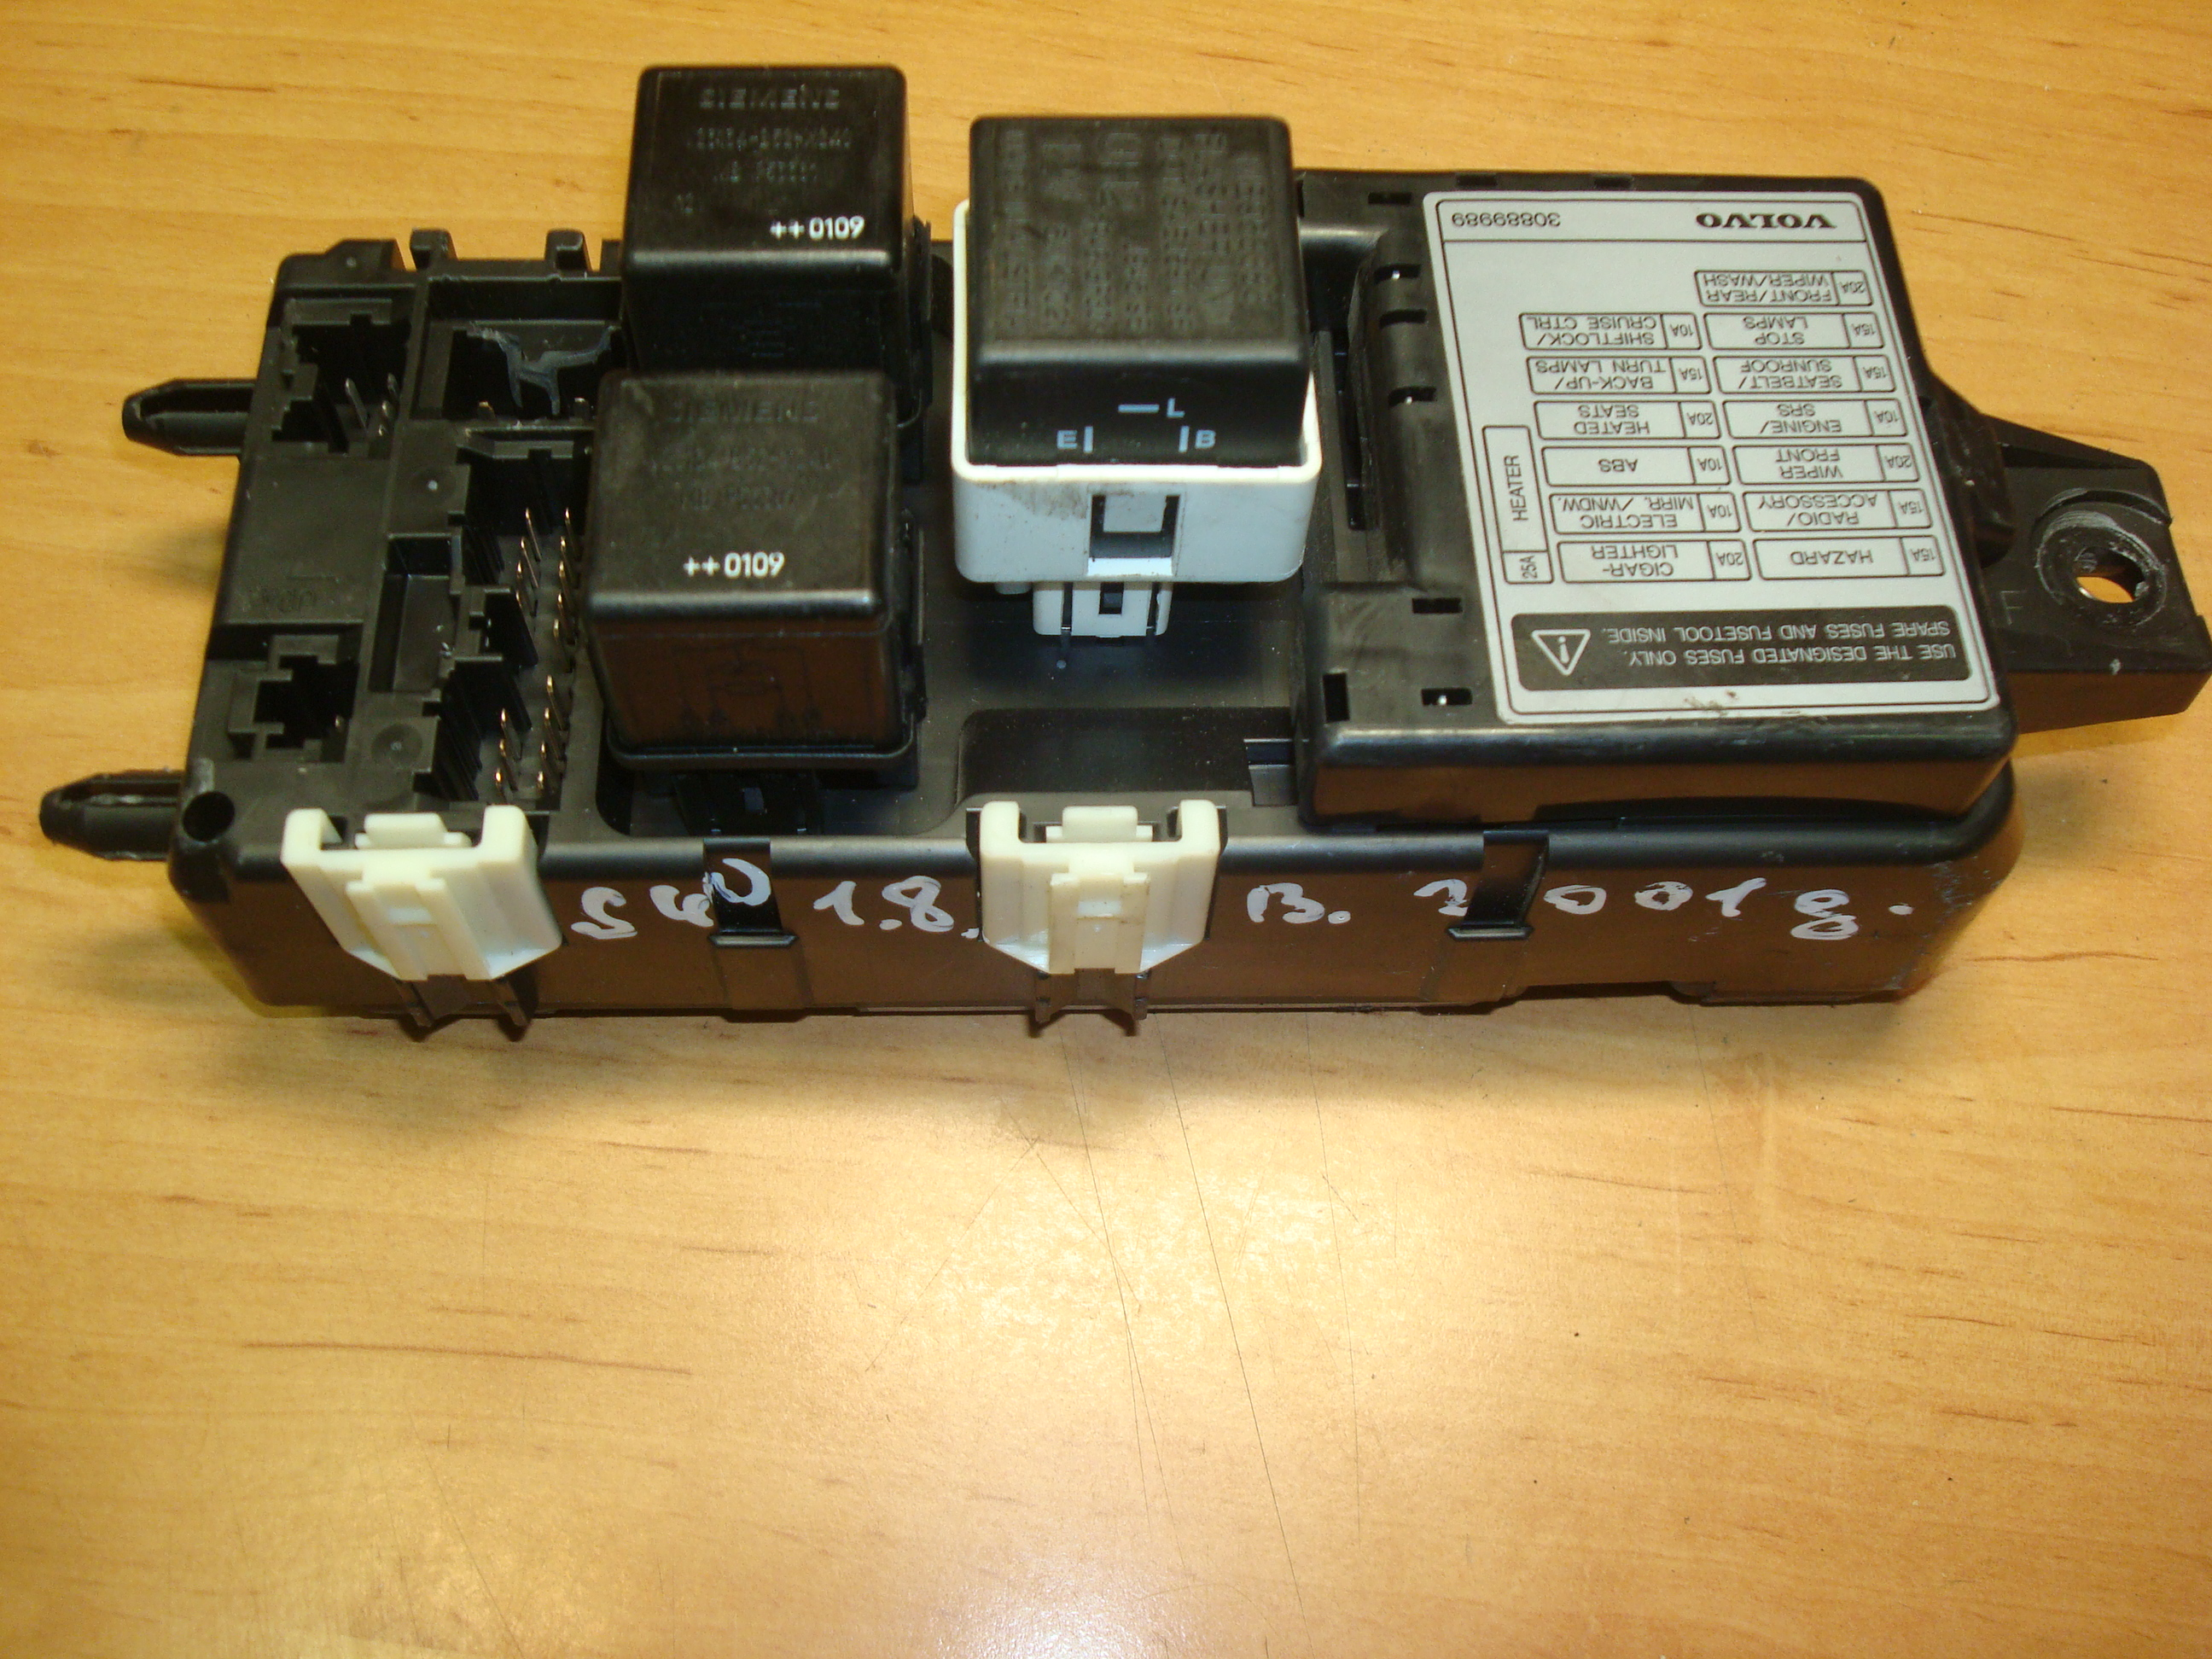 Volvo S40 V40 96 04 Fuse Box Relay Cherokee Article 30889989 Mb953383